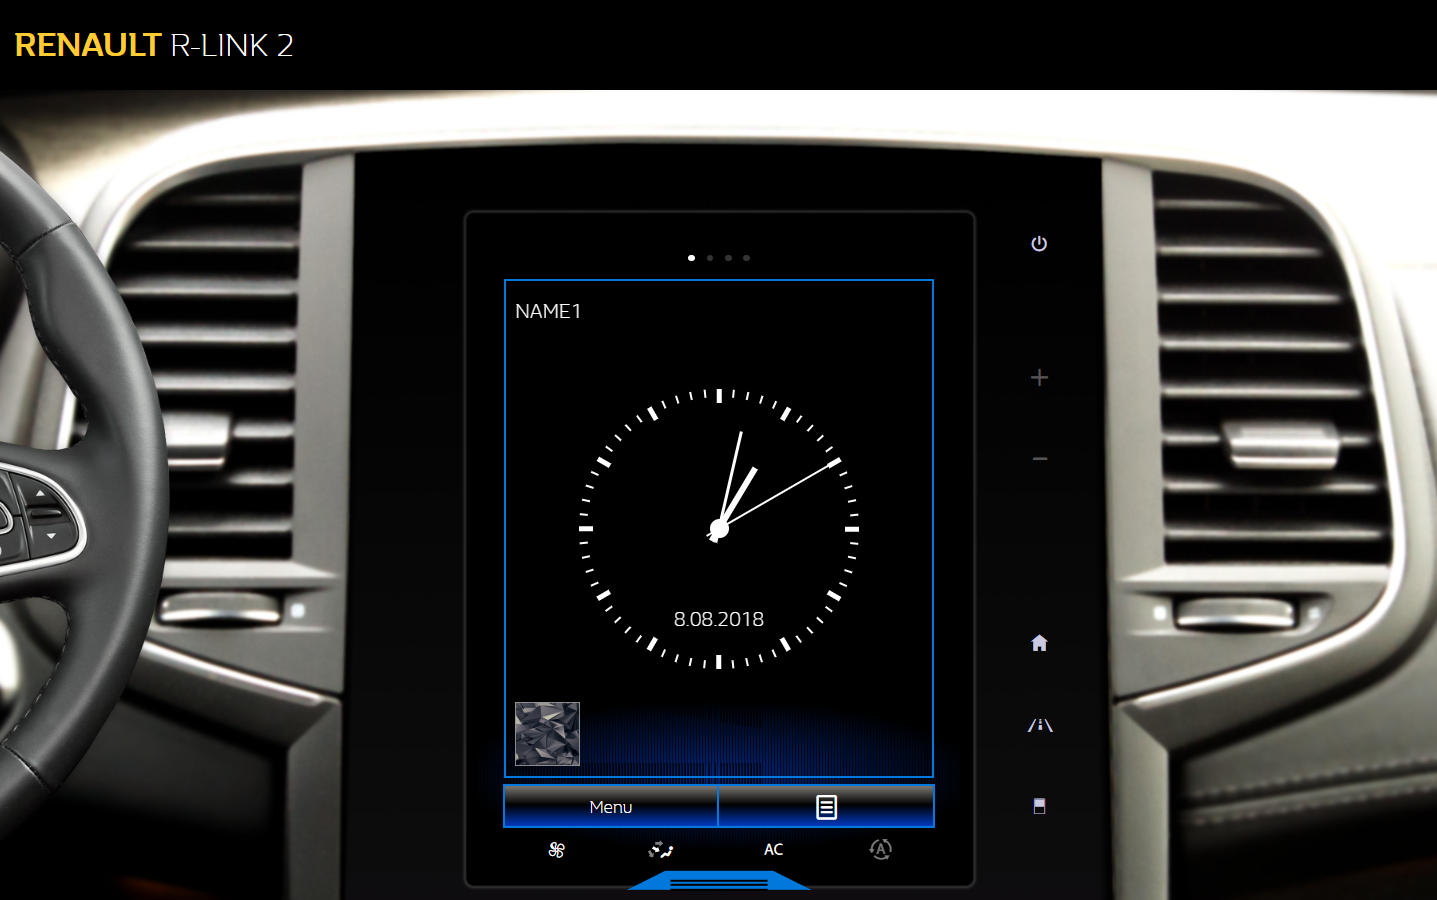 The new version of the R-link2 emulator web application for Renault